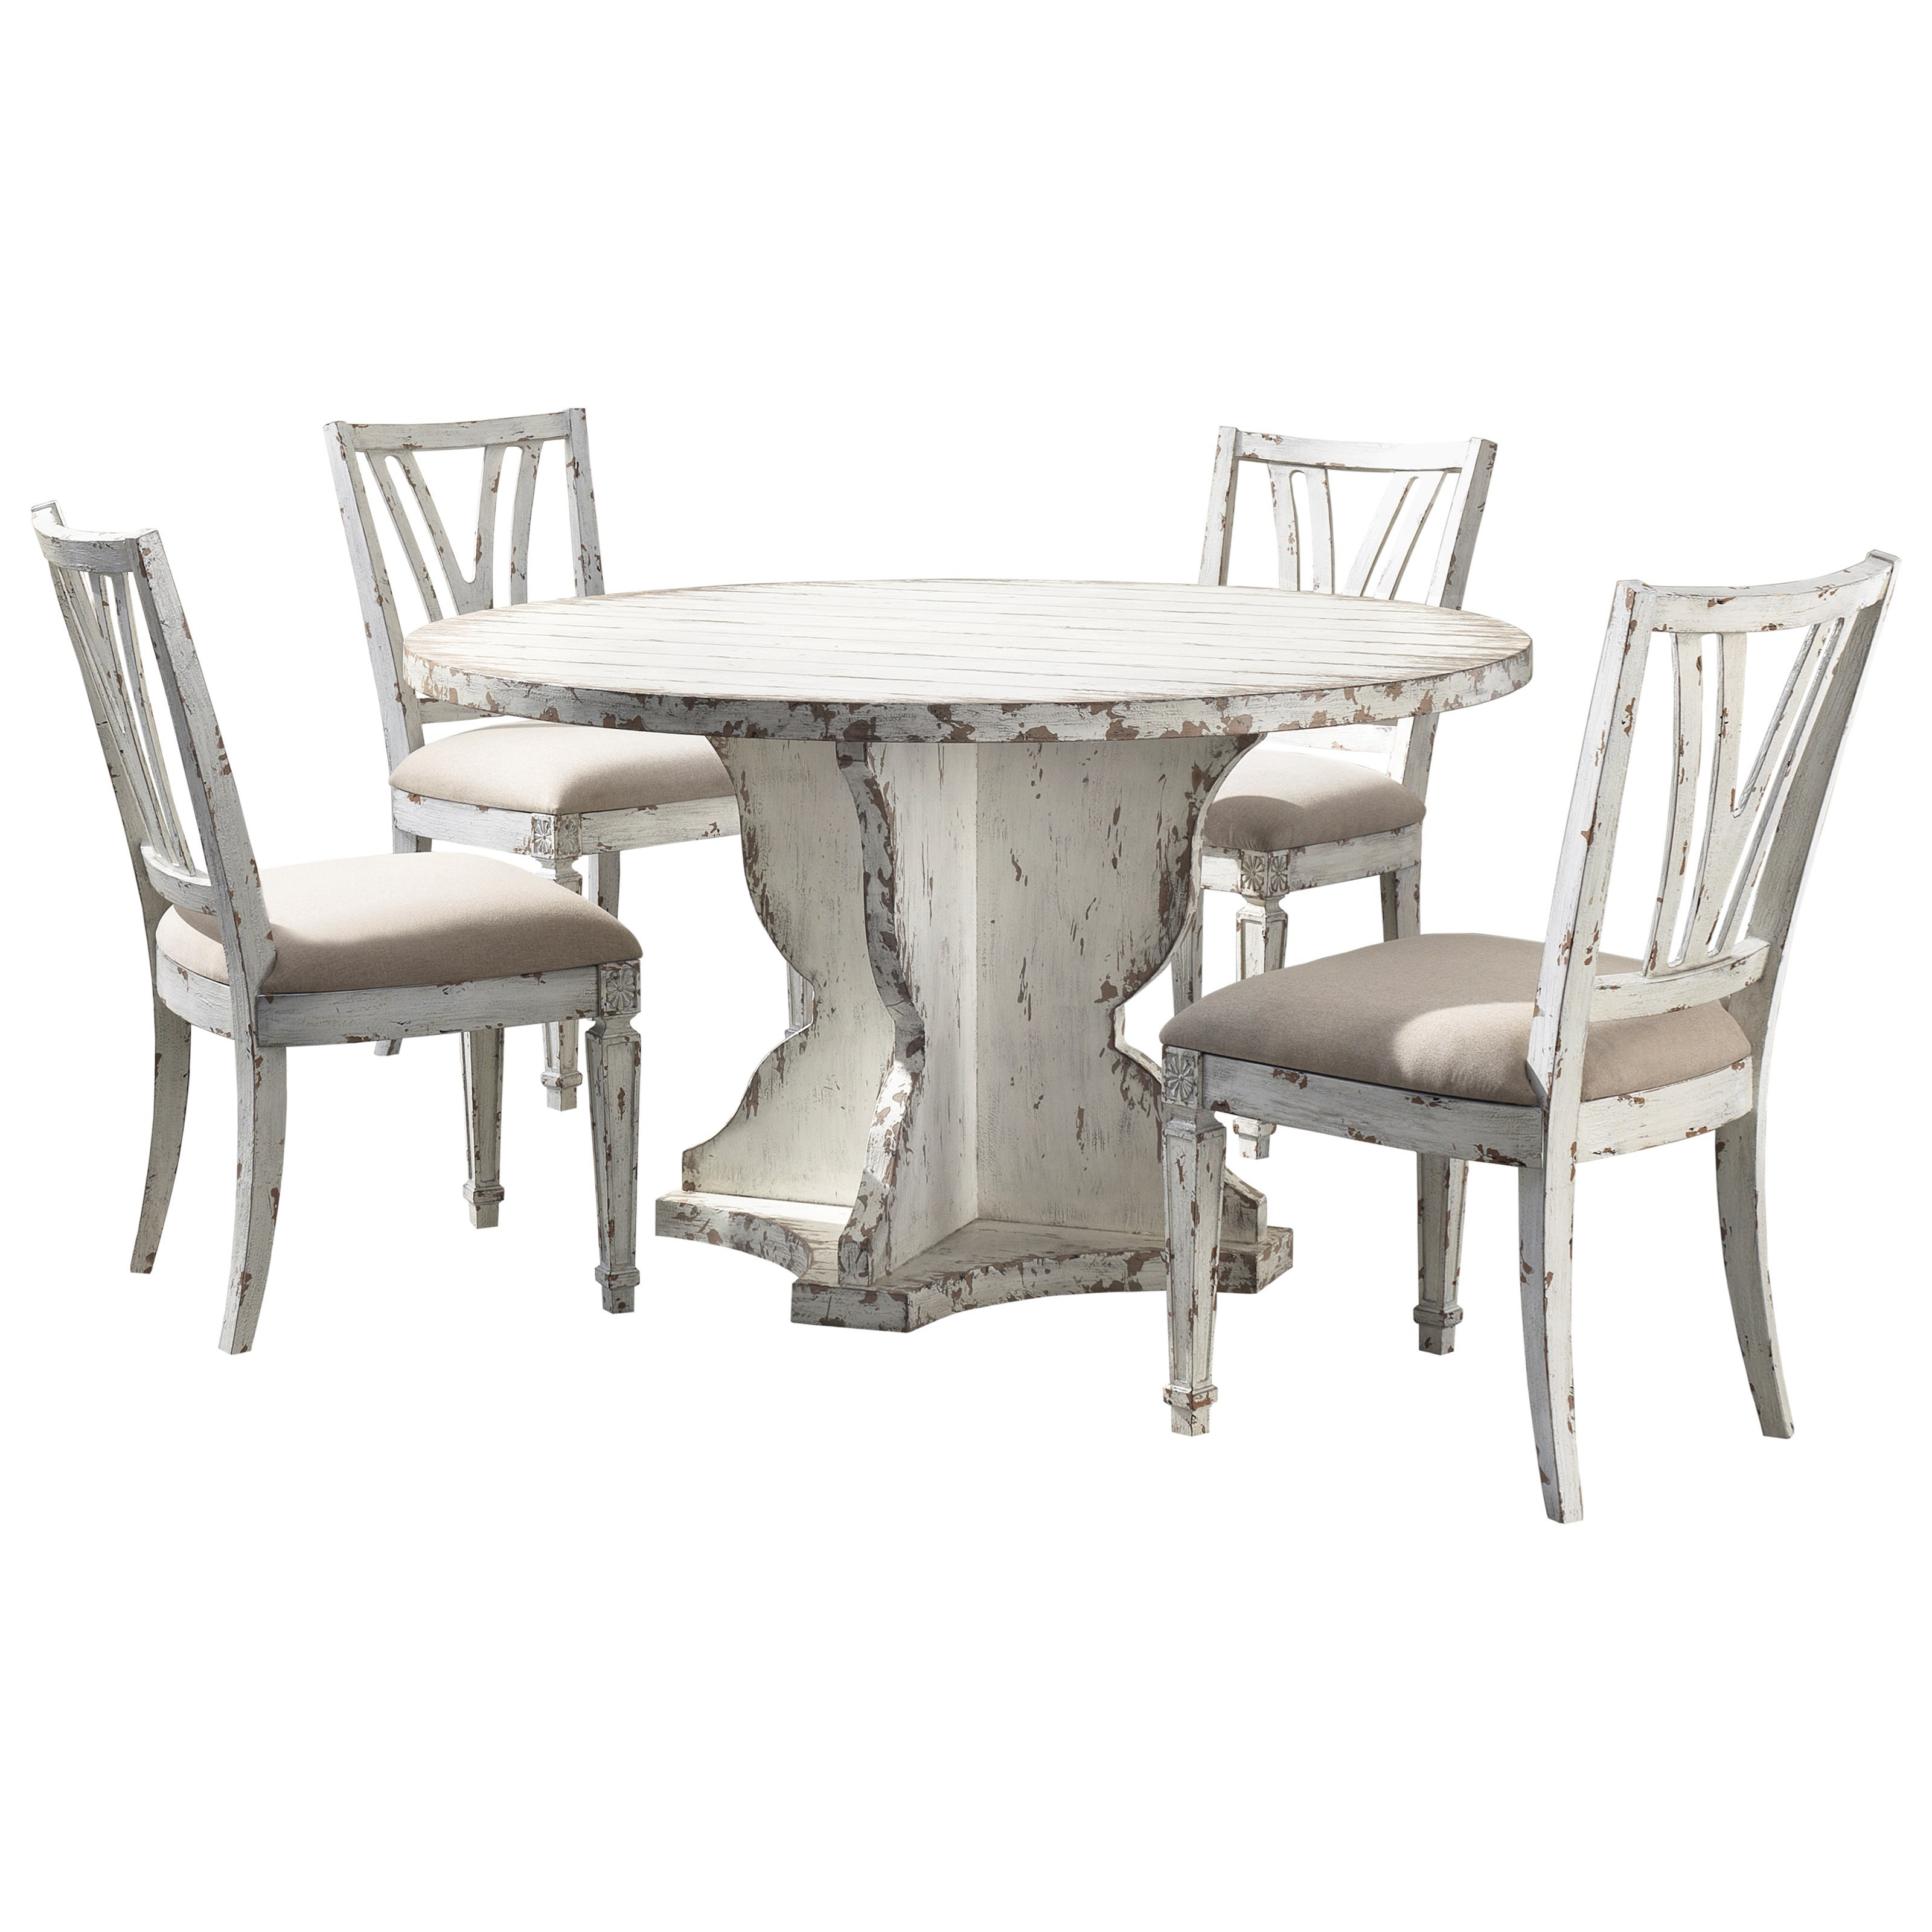 Olivia 5-Piece Table and Chair Set by C2C at Walker's Furniture